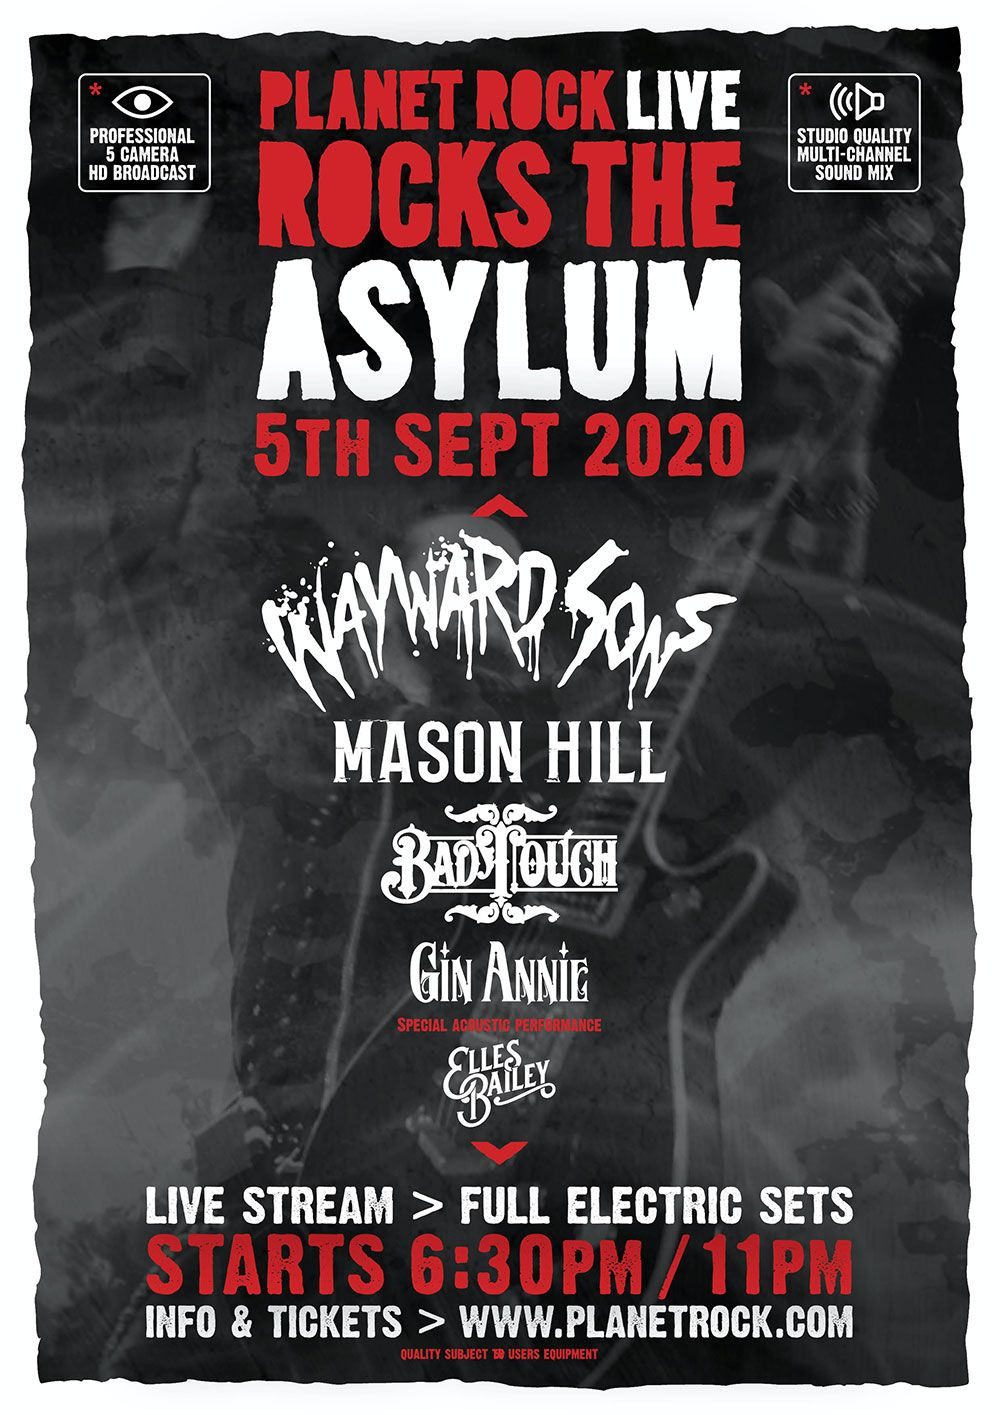 Planet Rock Live Rocks The Asylum poster